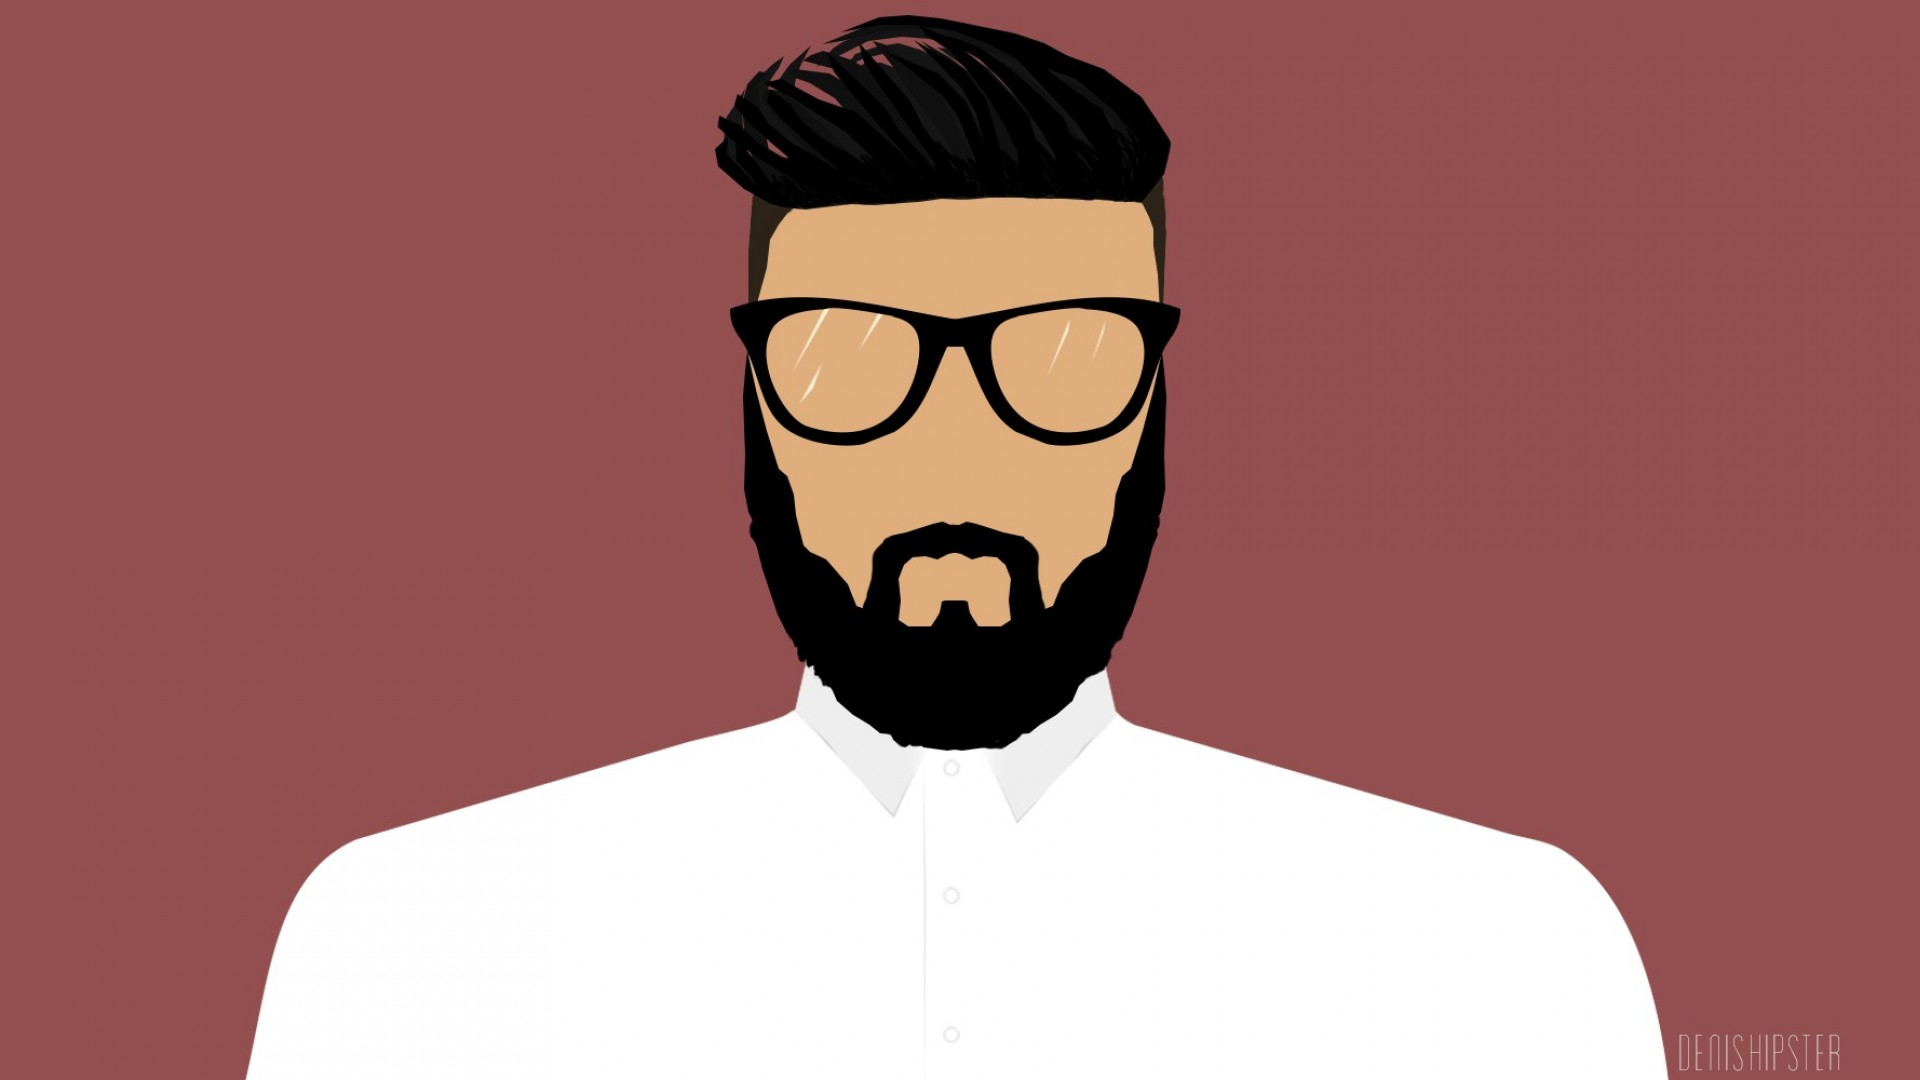 hipster vectors artwork wallpapers hd gratuit